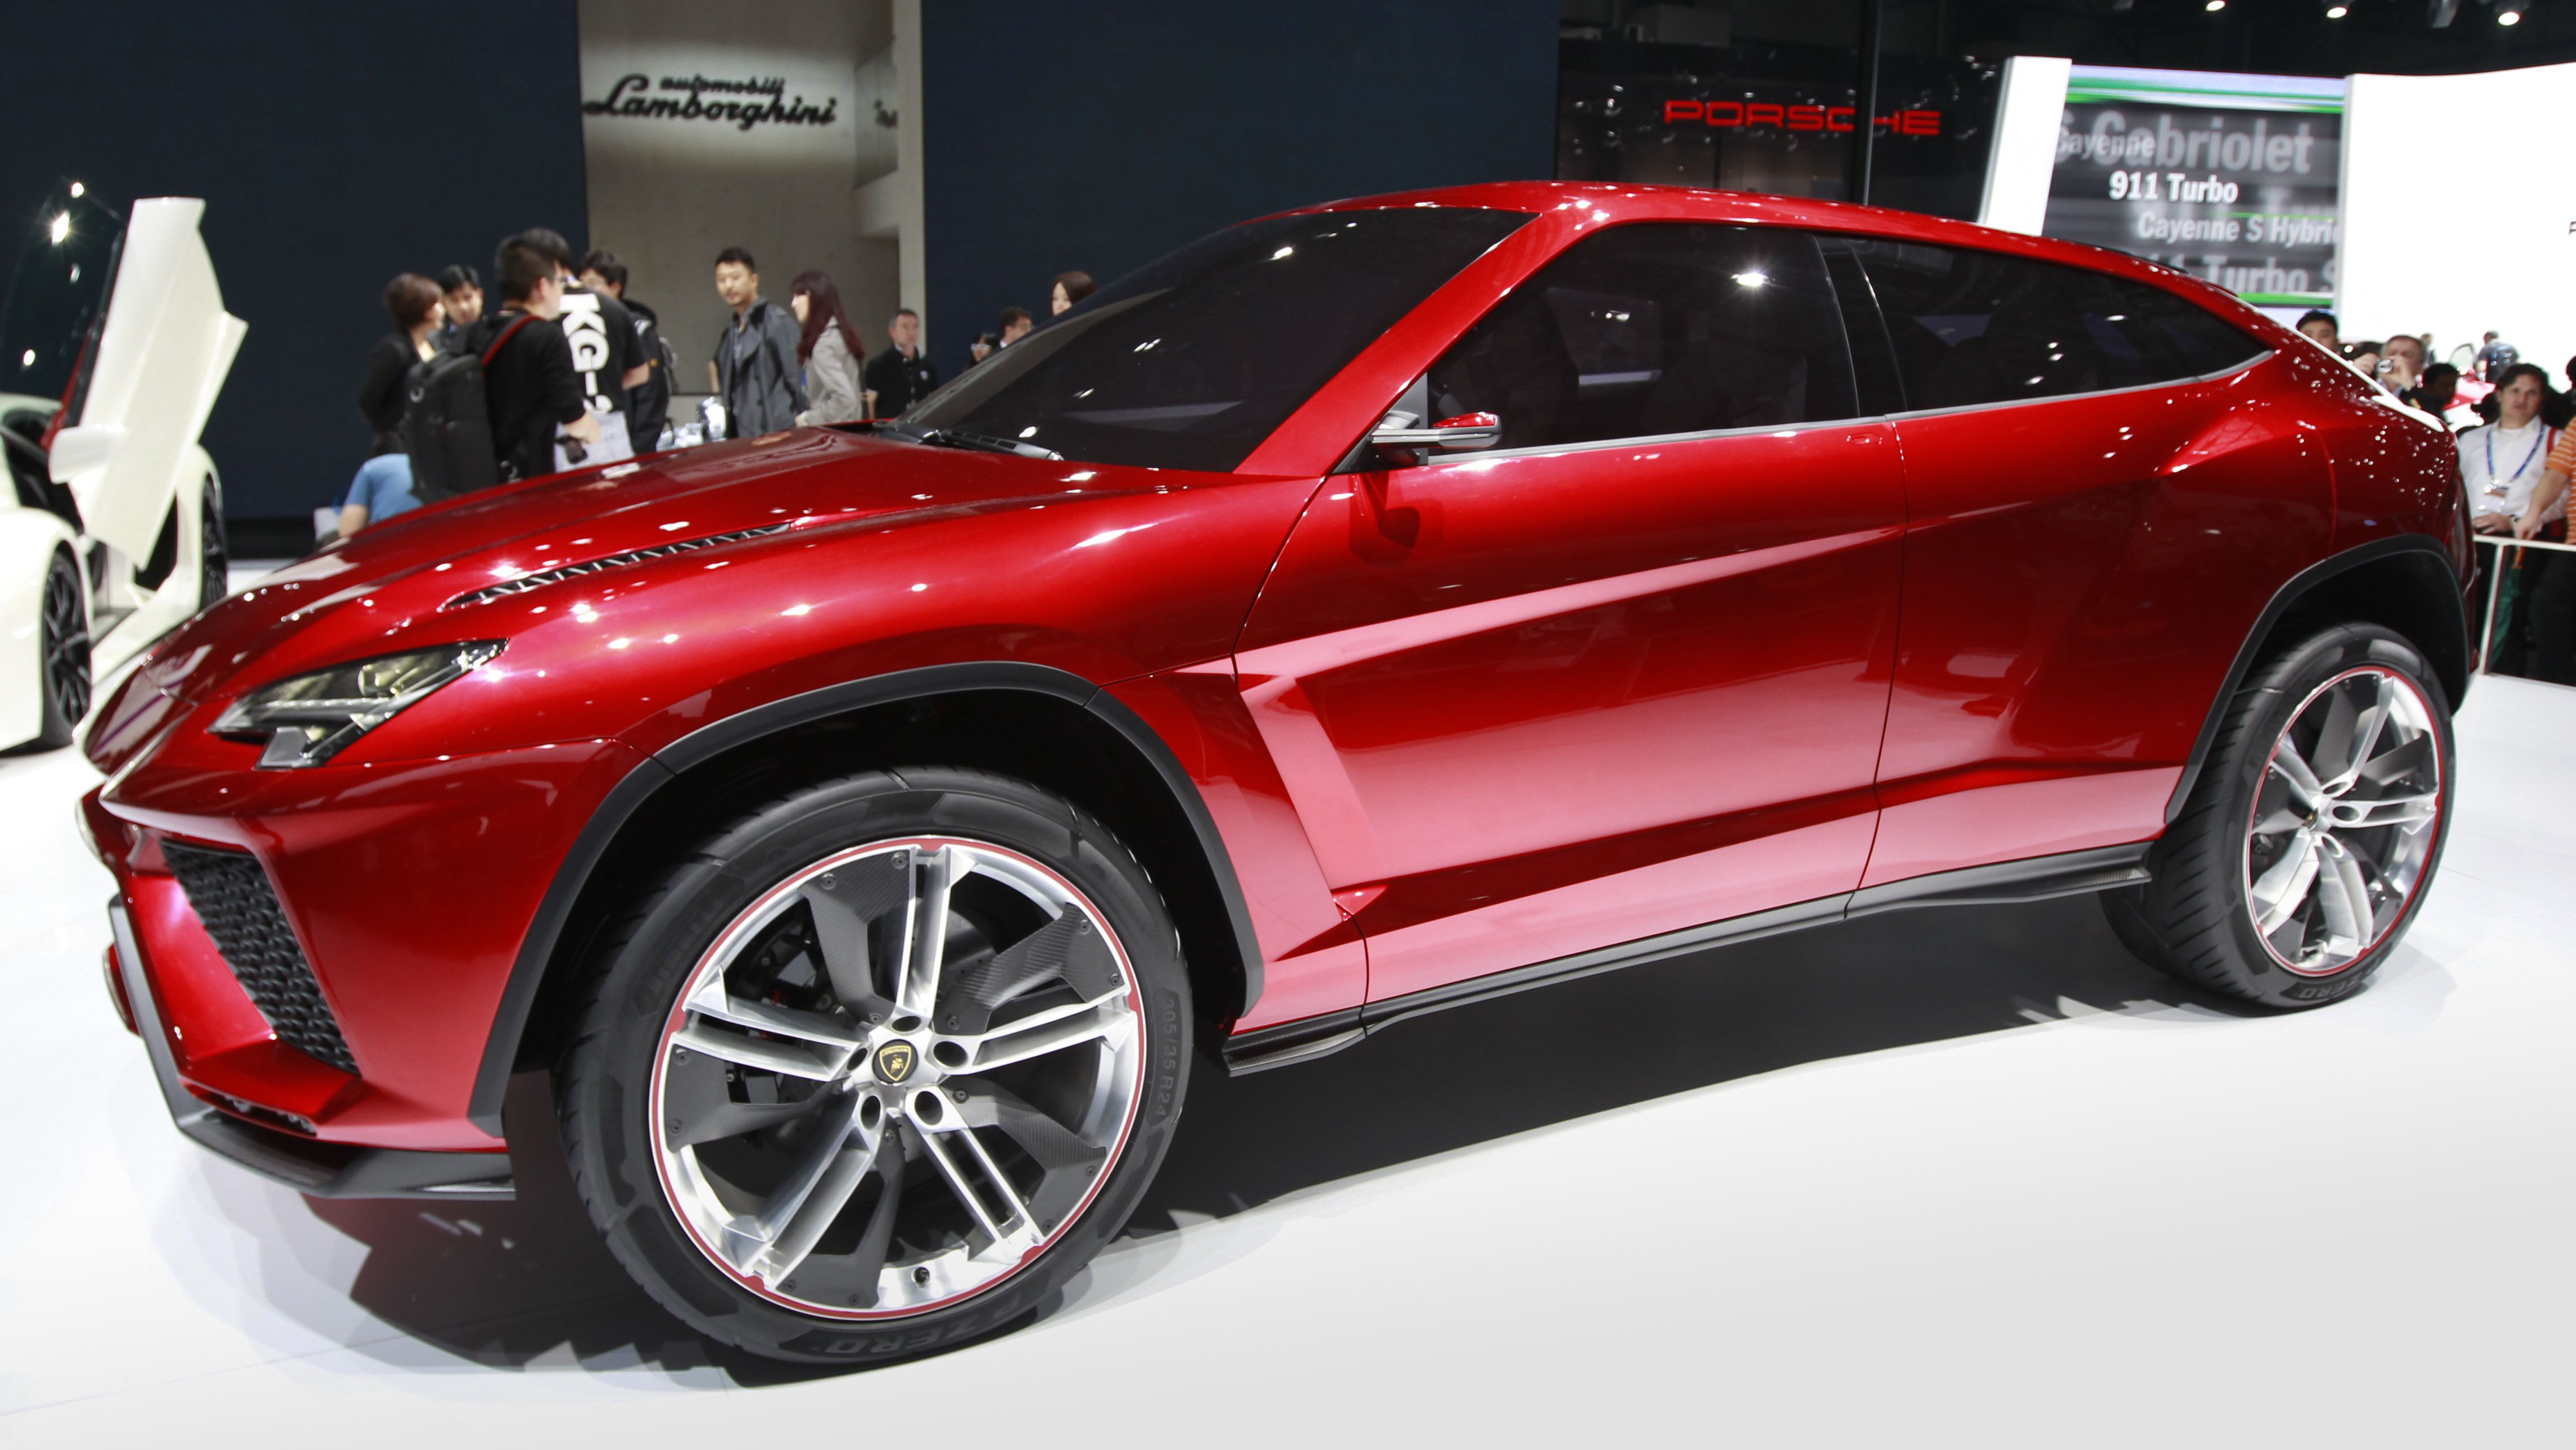 """Lamborghini's latest SUV """"Urus"""" is on display at the Beijing International Automotive Exhibition in Beijing, China, Tuesday, April 24, 2012. (AP Photo/ Vincent Thian)"""